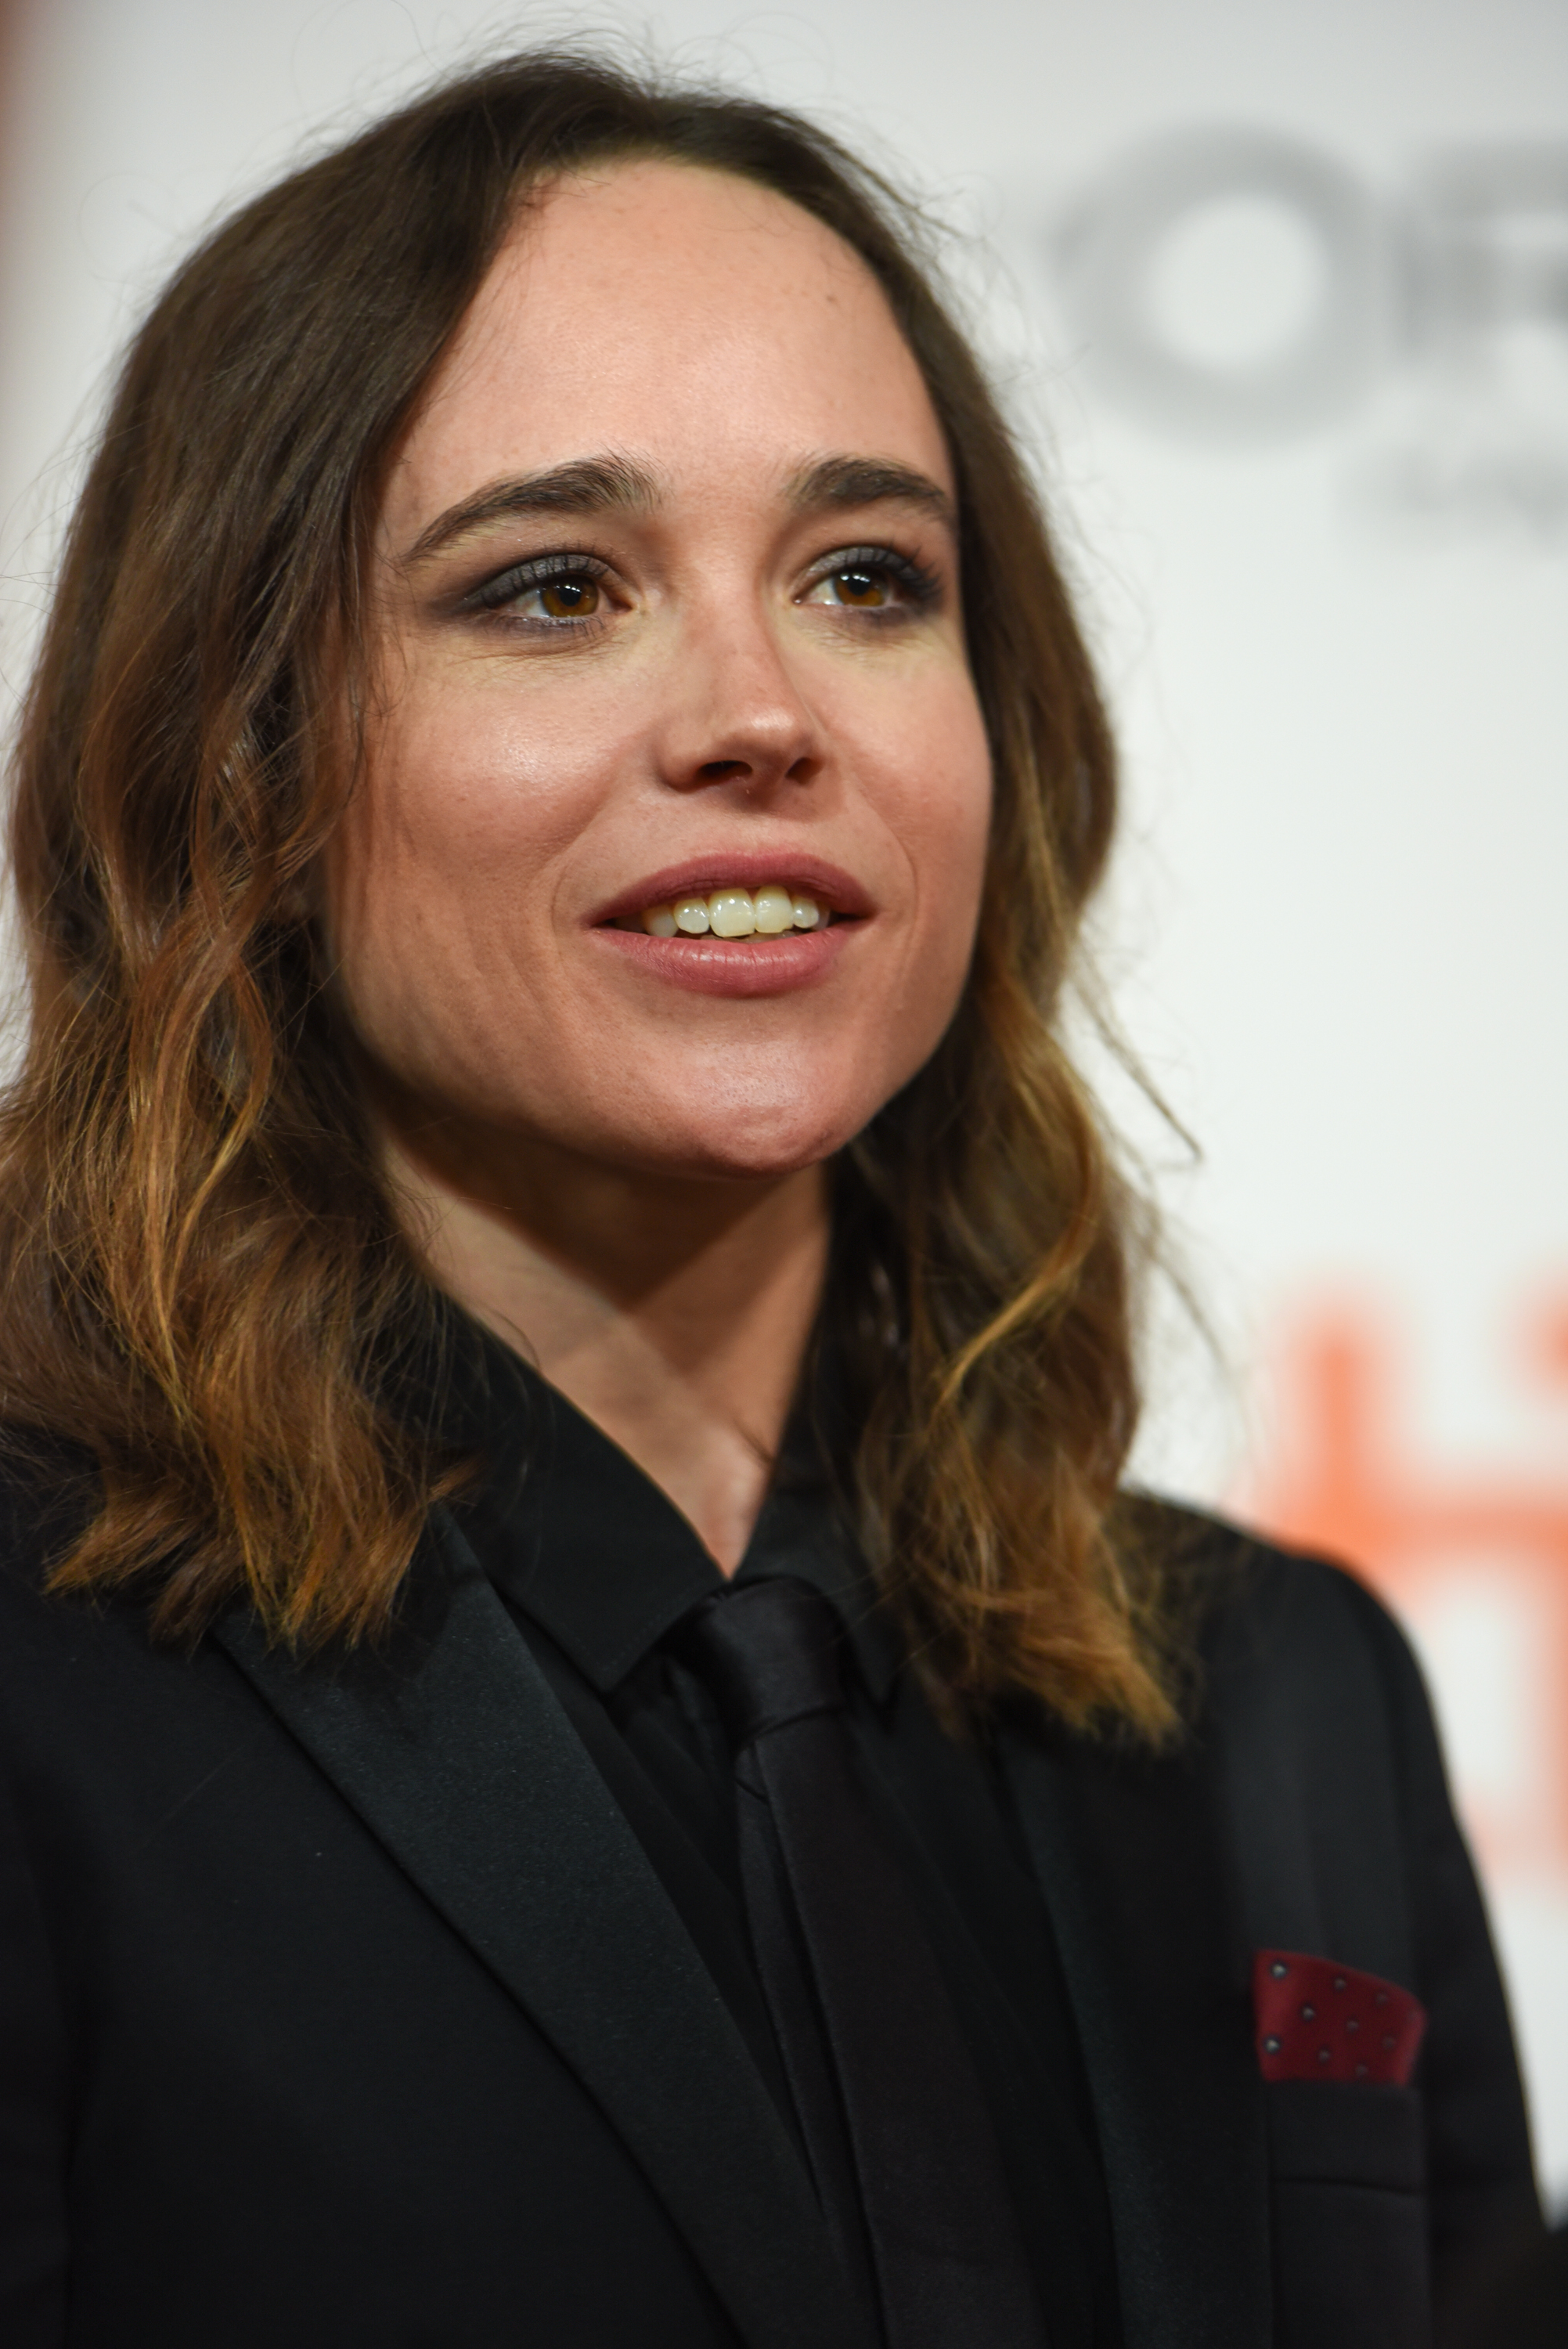 42nd Toronto International Film Festival - 'My Days of Mercy' - Premiere                                                                      Featuring: Ellen Page                                   Where: Toronto, Canada                                   When: 15 Sep 2017                                   Credit: Jaime Espinoza/WENN.com